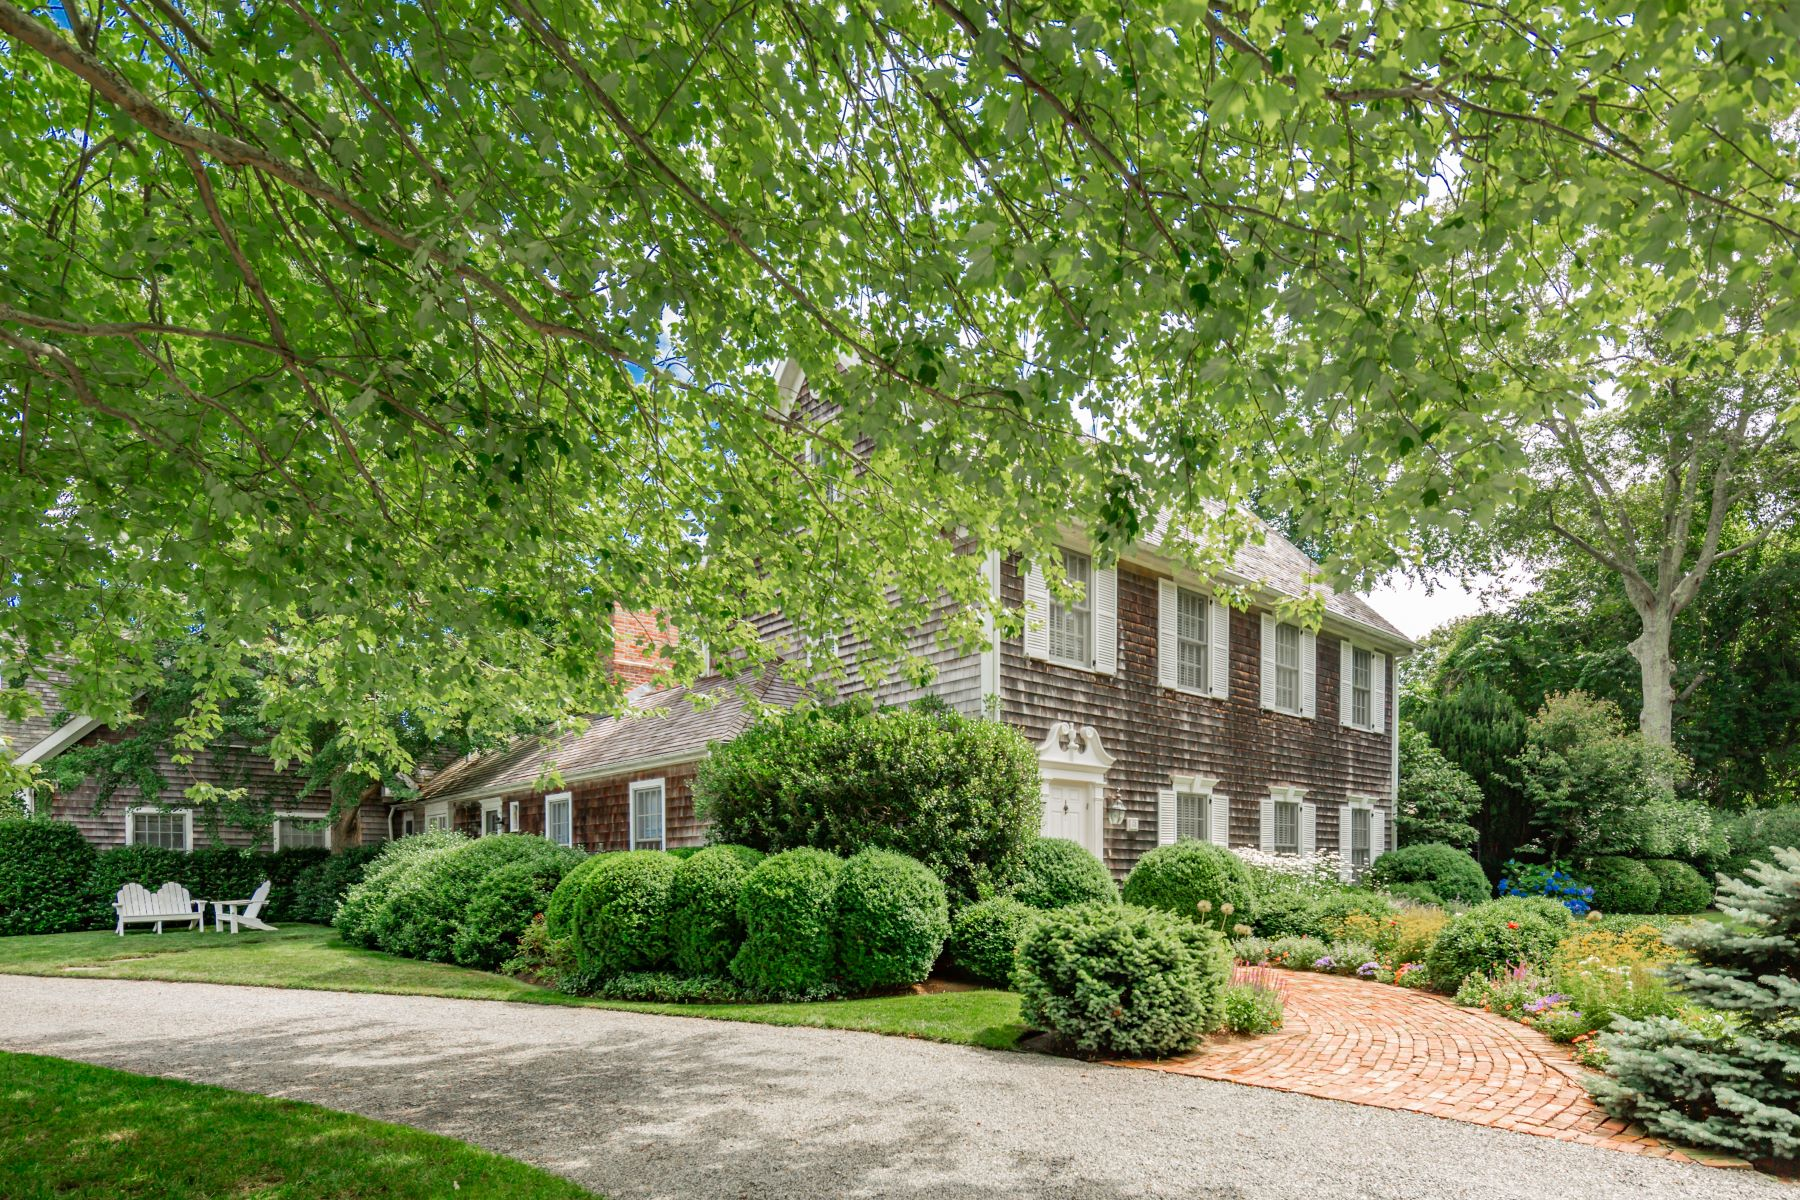 Single Family Homes for Sale at 34 Dunemere Lane East Hampton, New York 11937 United States